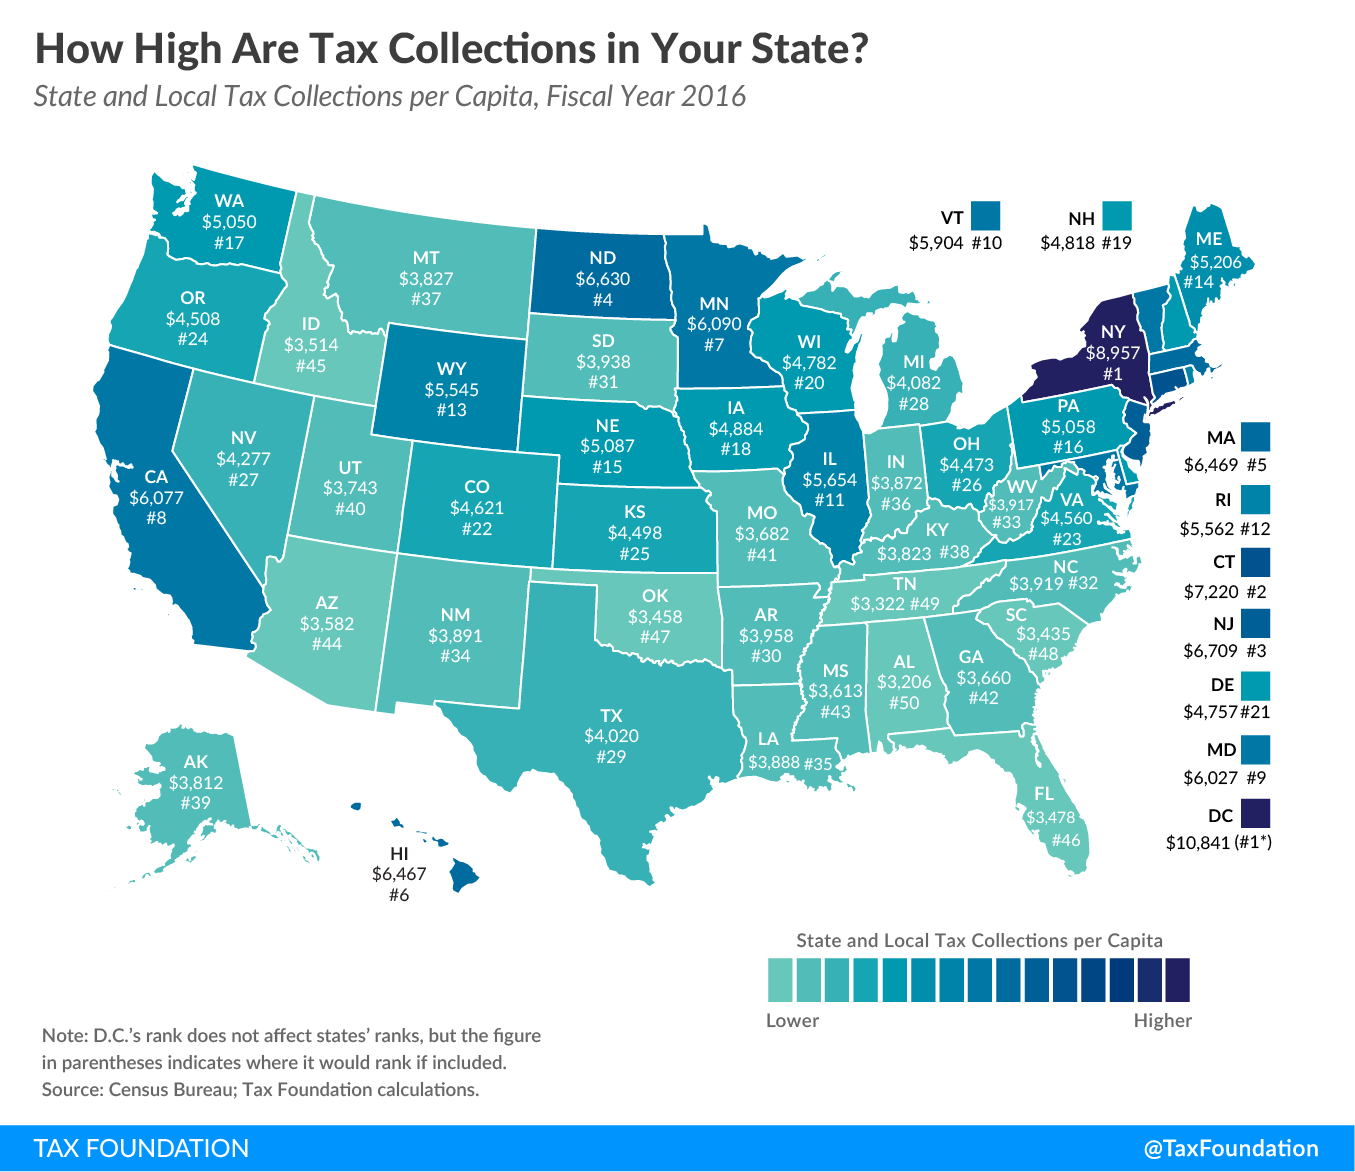 How high are state and local tax collections in your state? State and local tax collections per capita